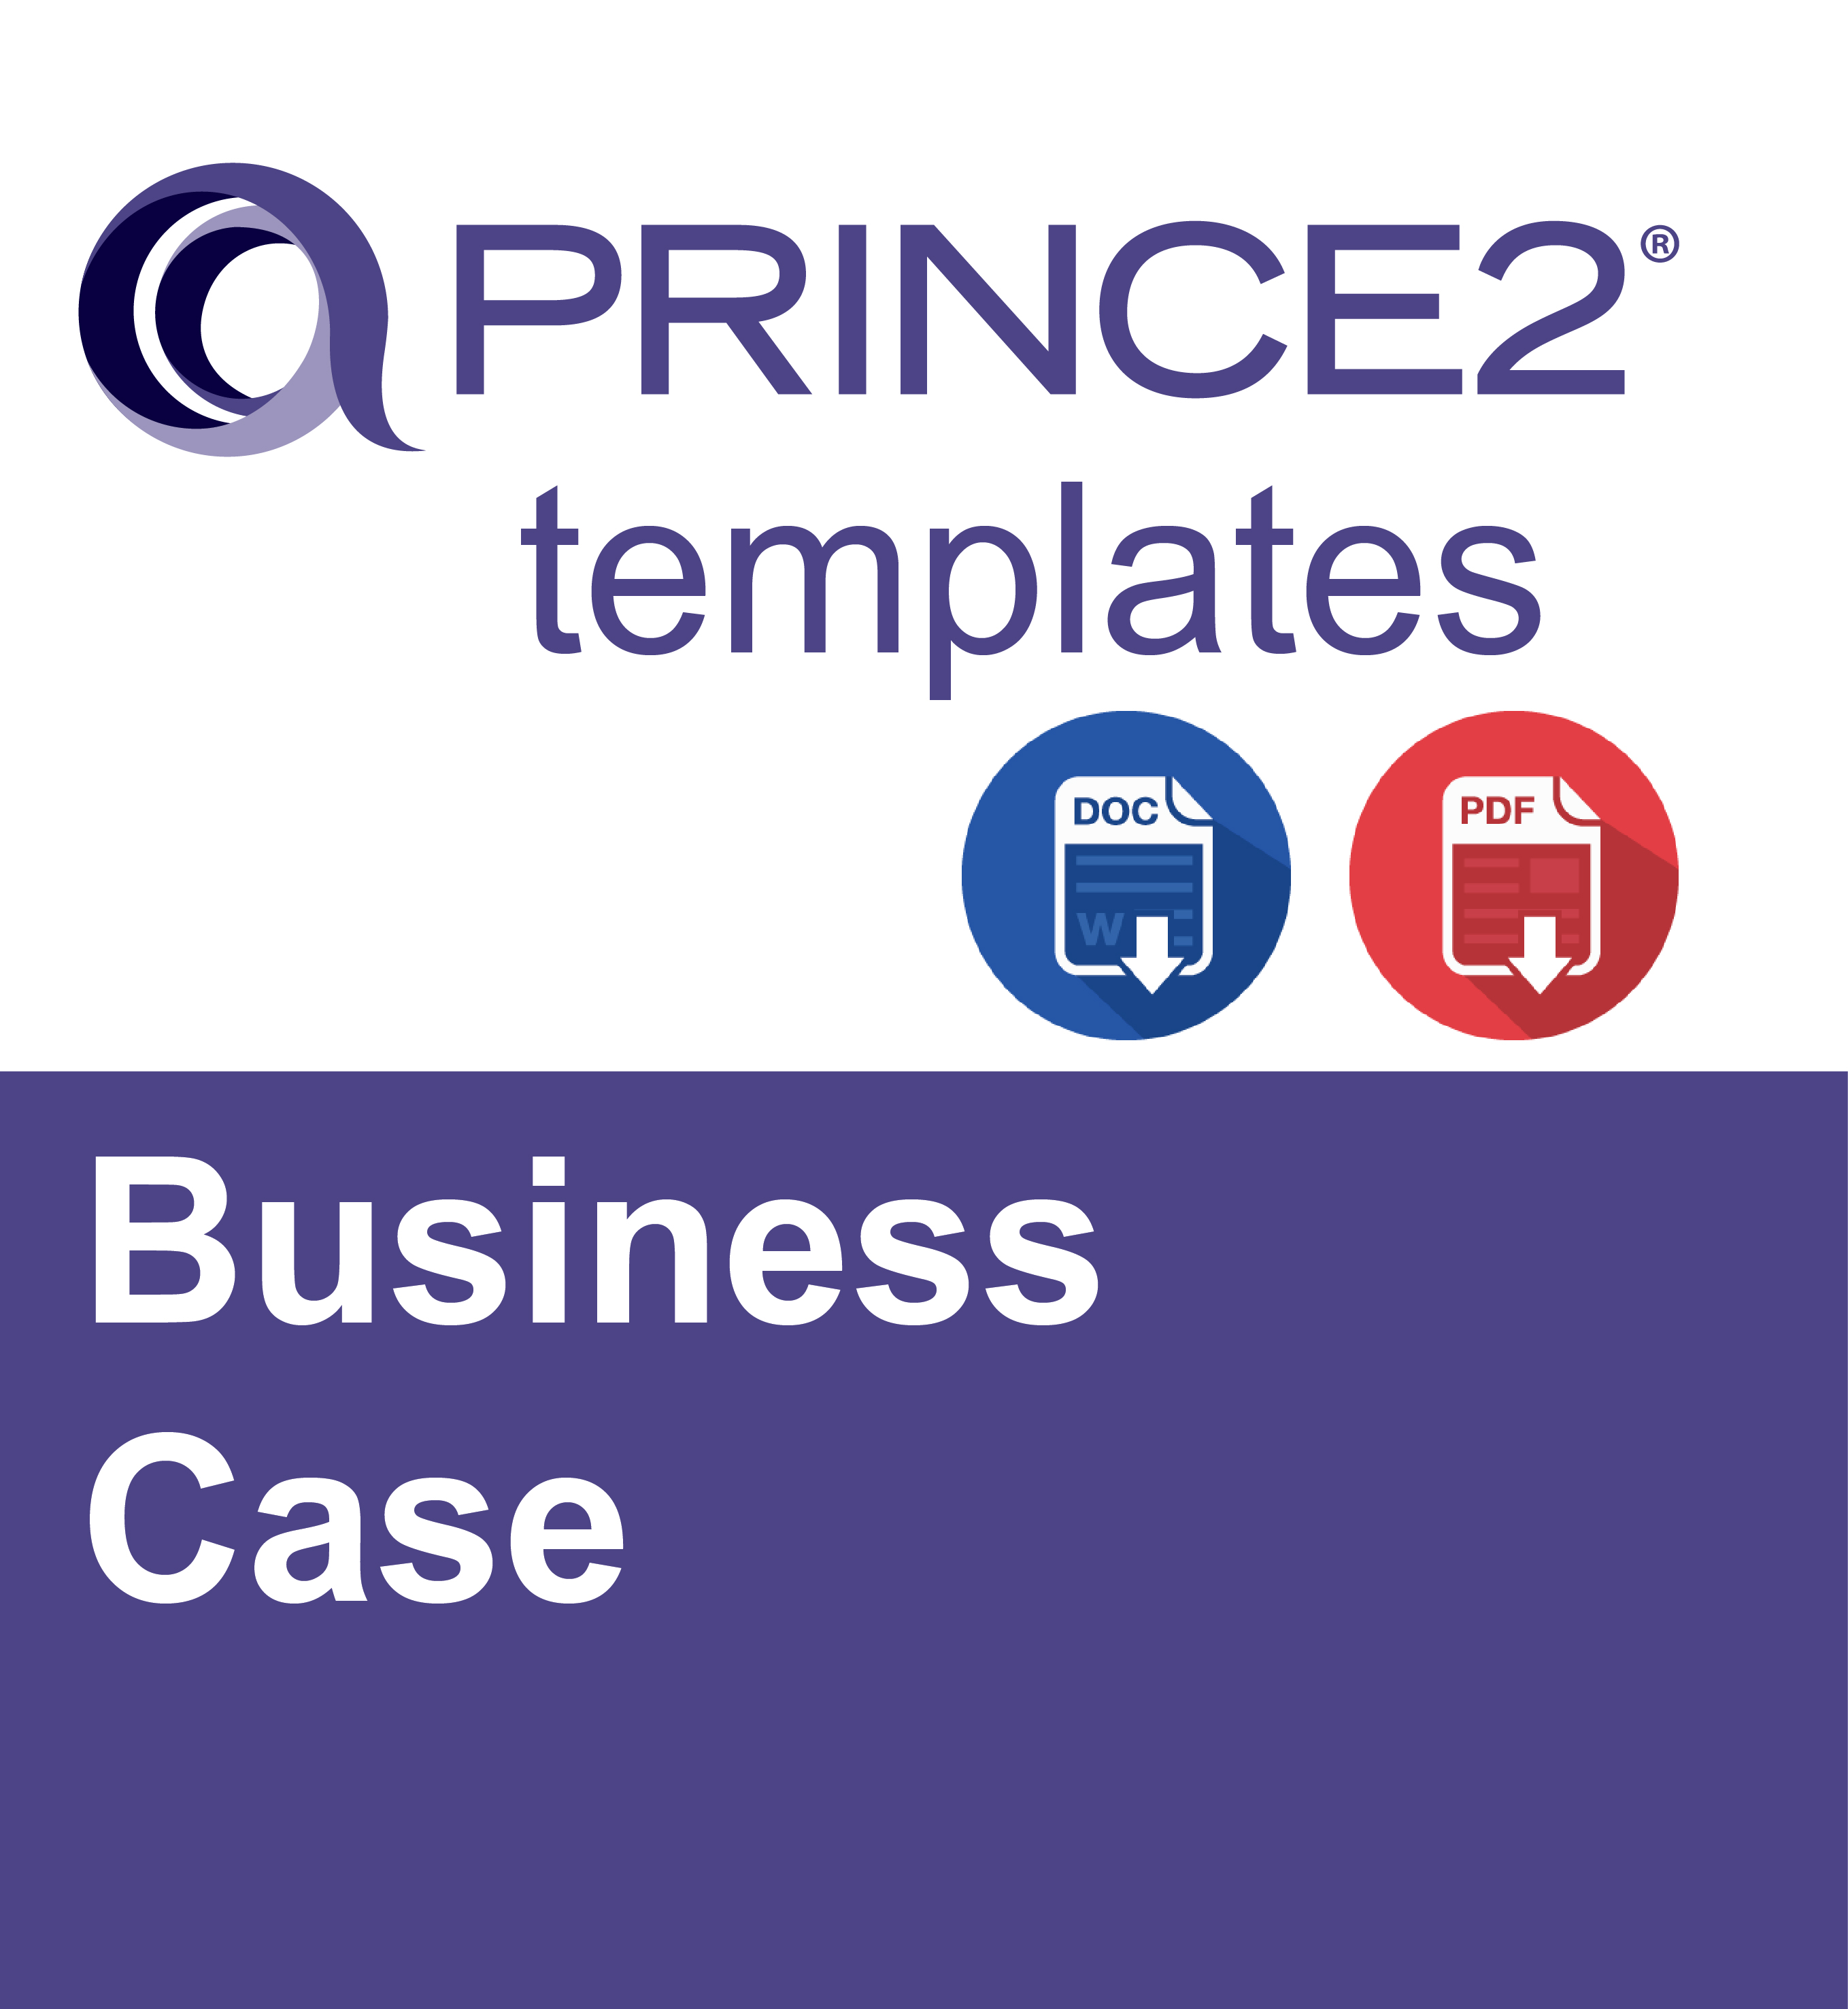 Prince2 business case ebalance p2 templates business case 01 fbccfo Images